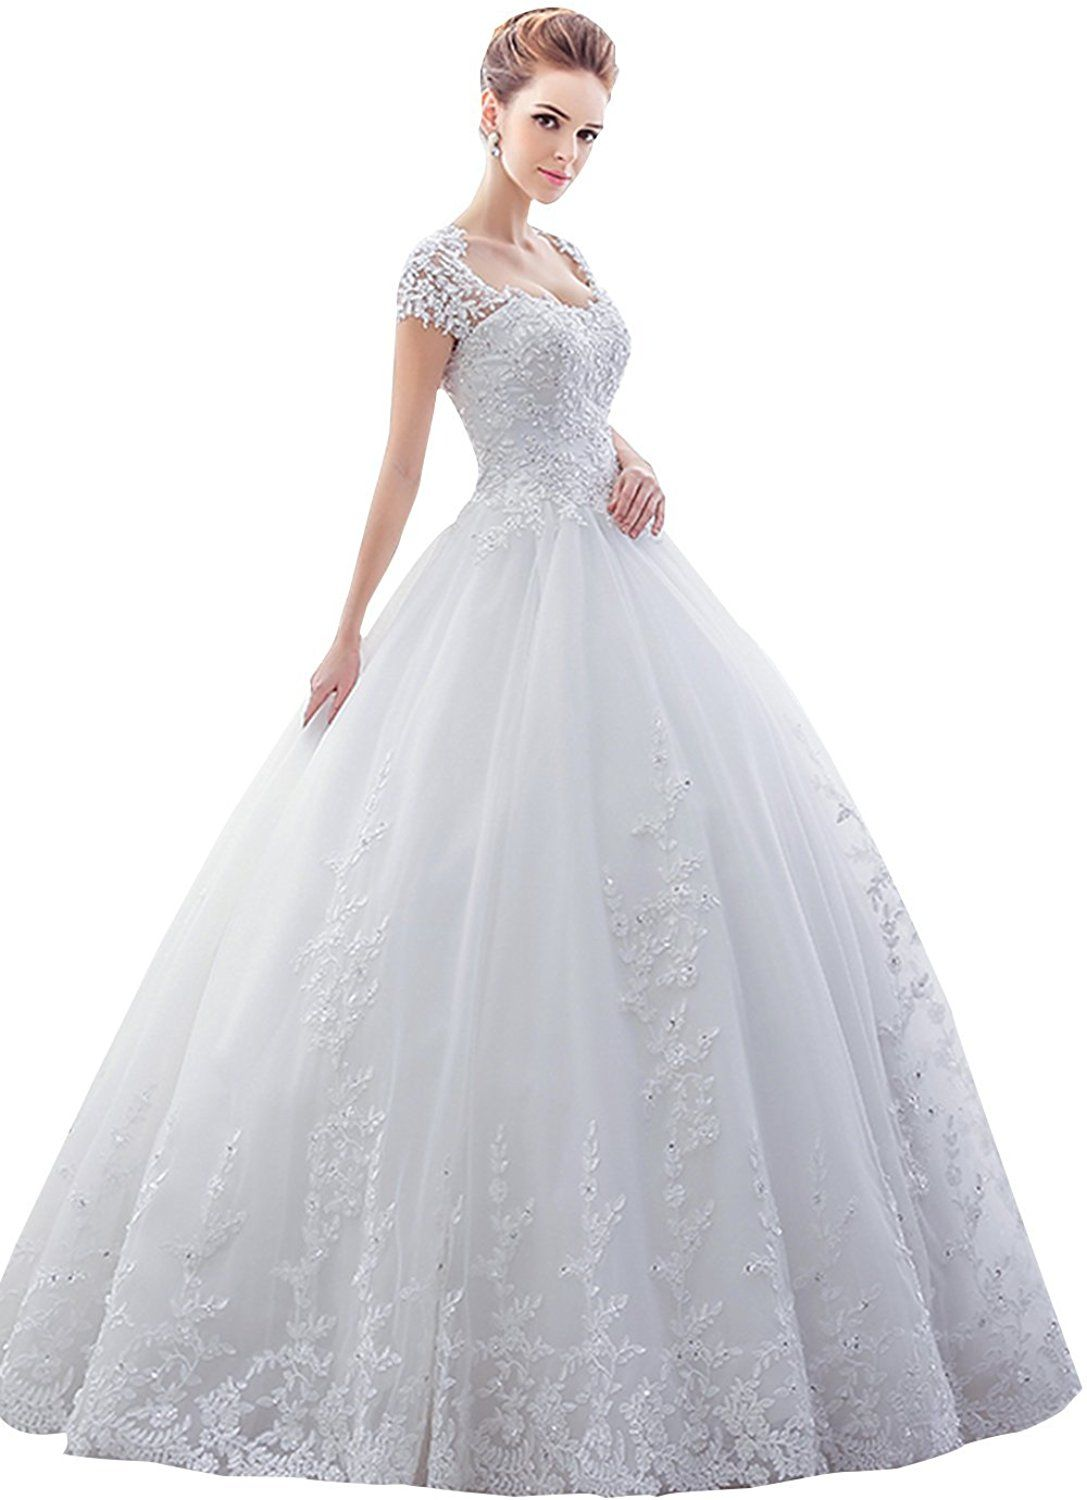 Wedding dresses ball gown lace  Sisjuly Womenus Lace Sweetheart Short Sleeve Ball Gown Wedding Dress